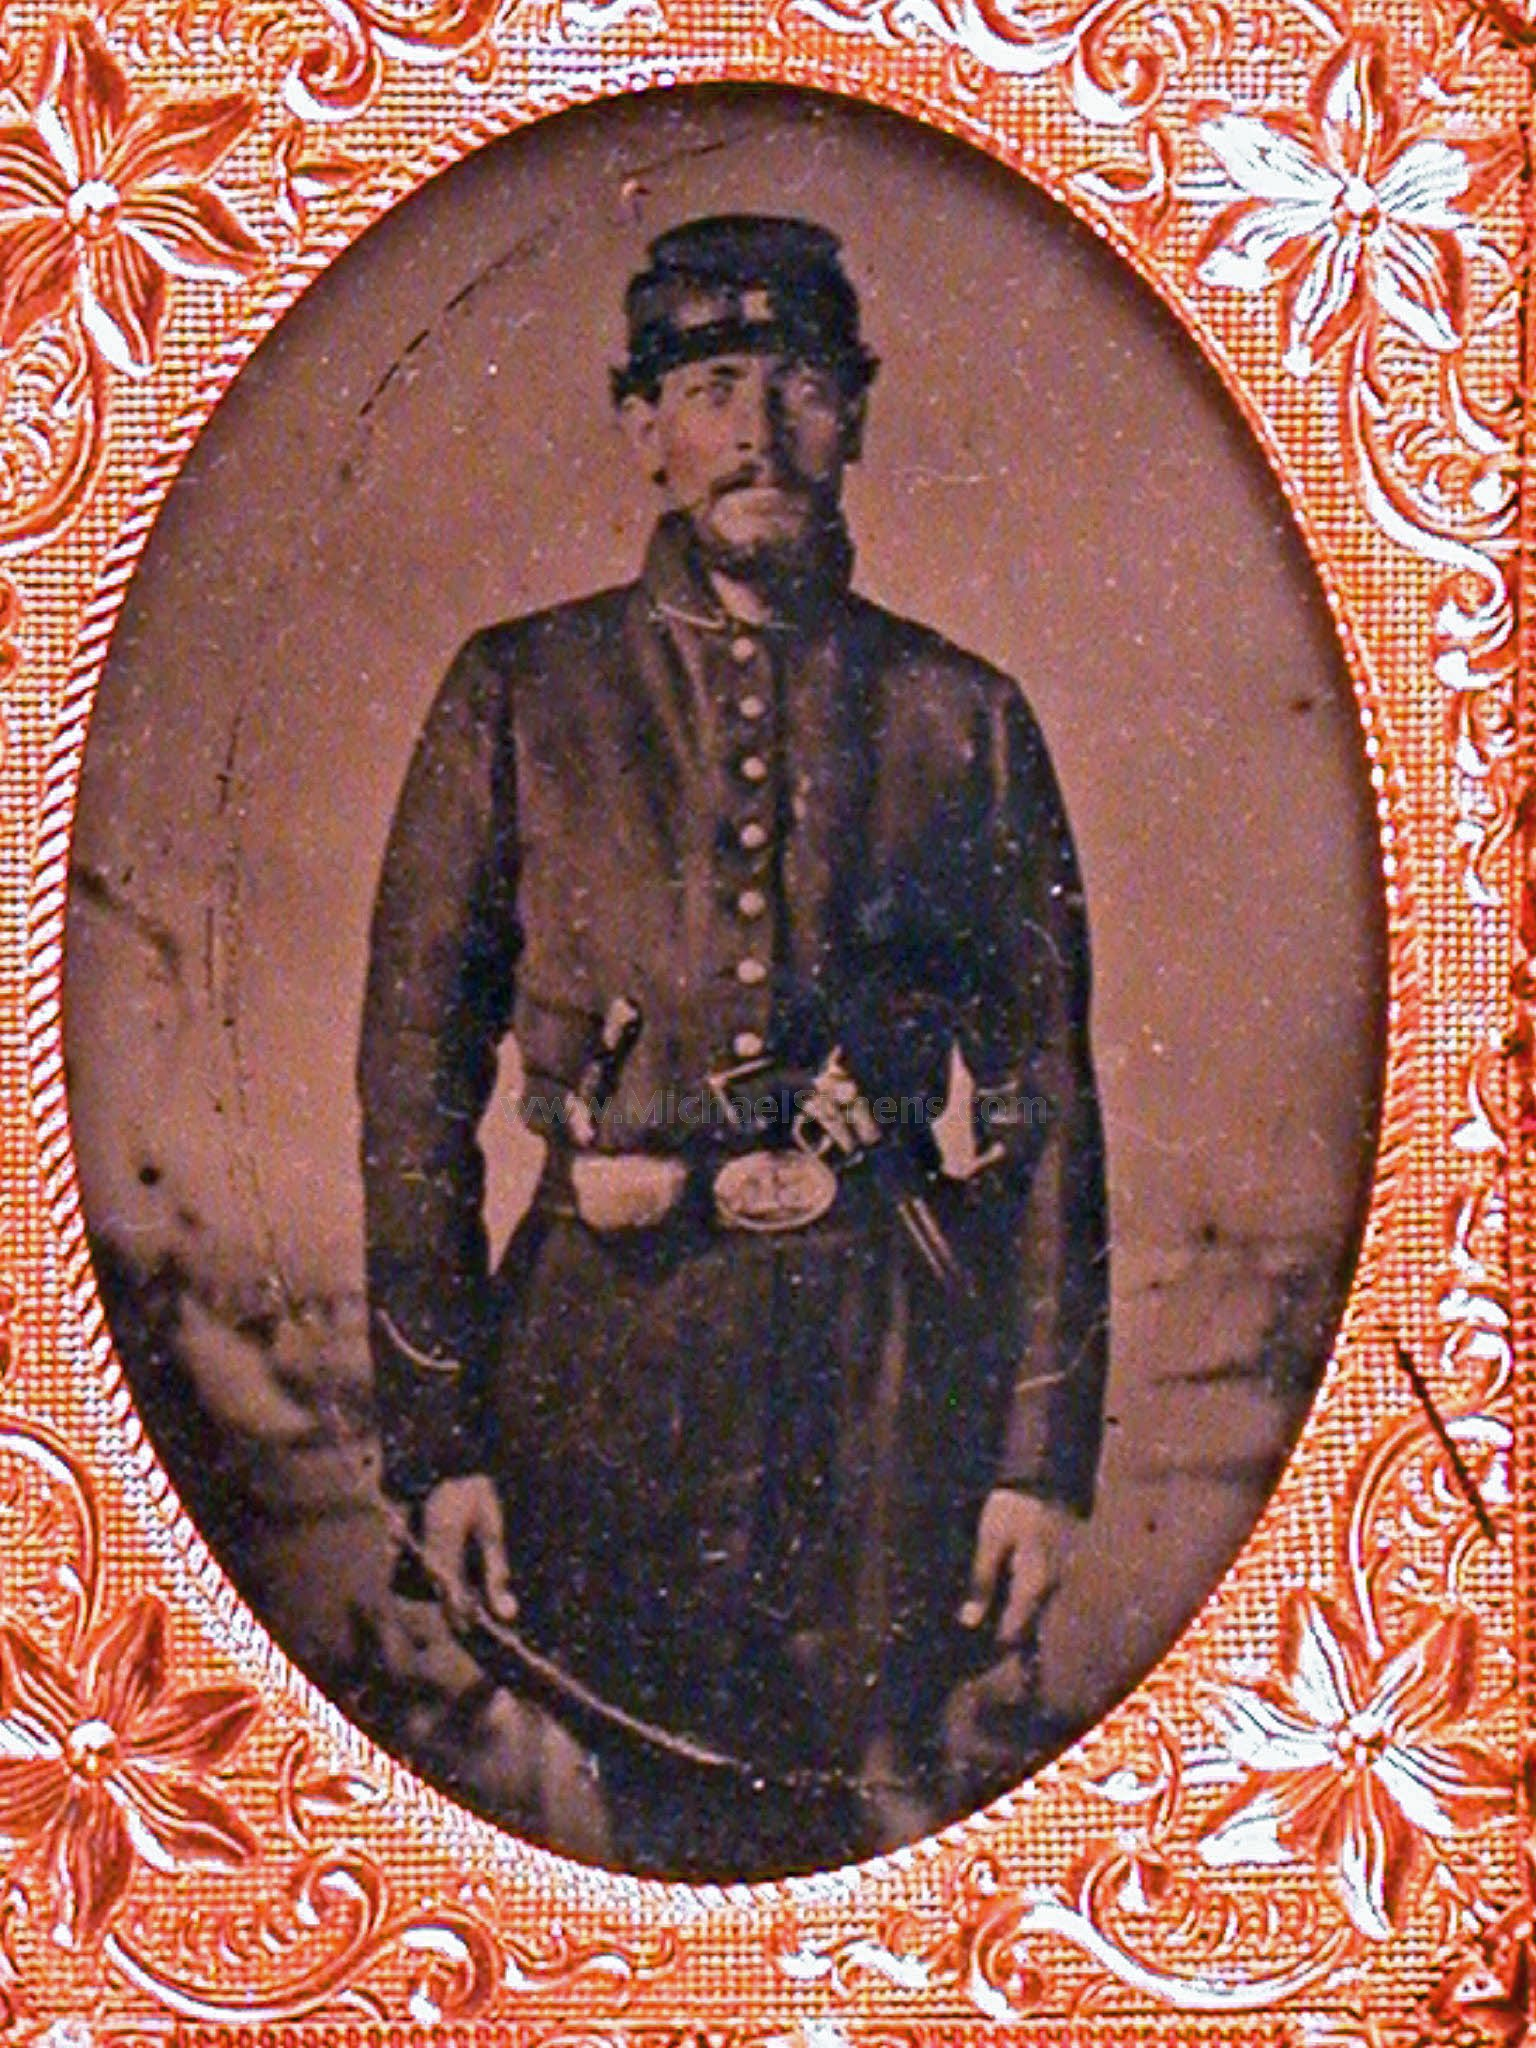 CIVIL WAR TINTYPE PHOTOGRAPH